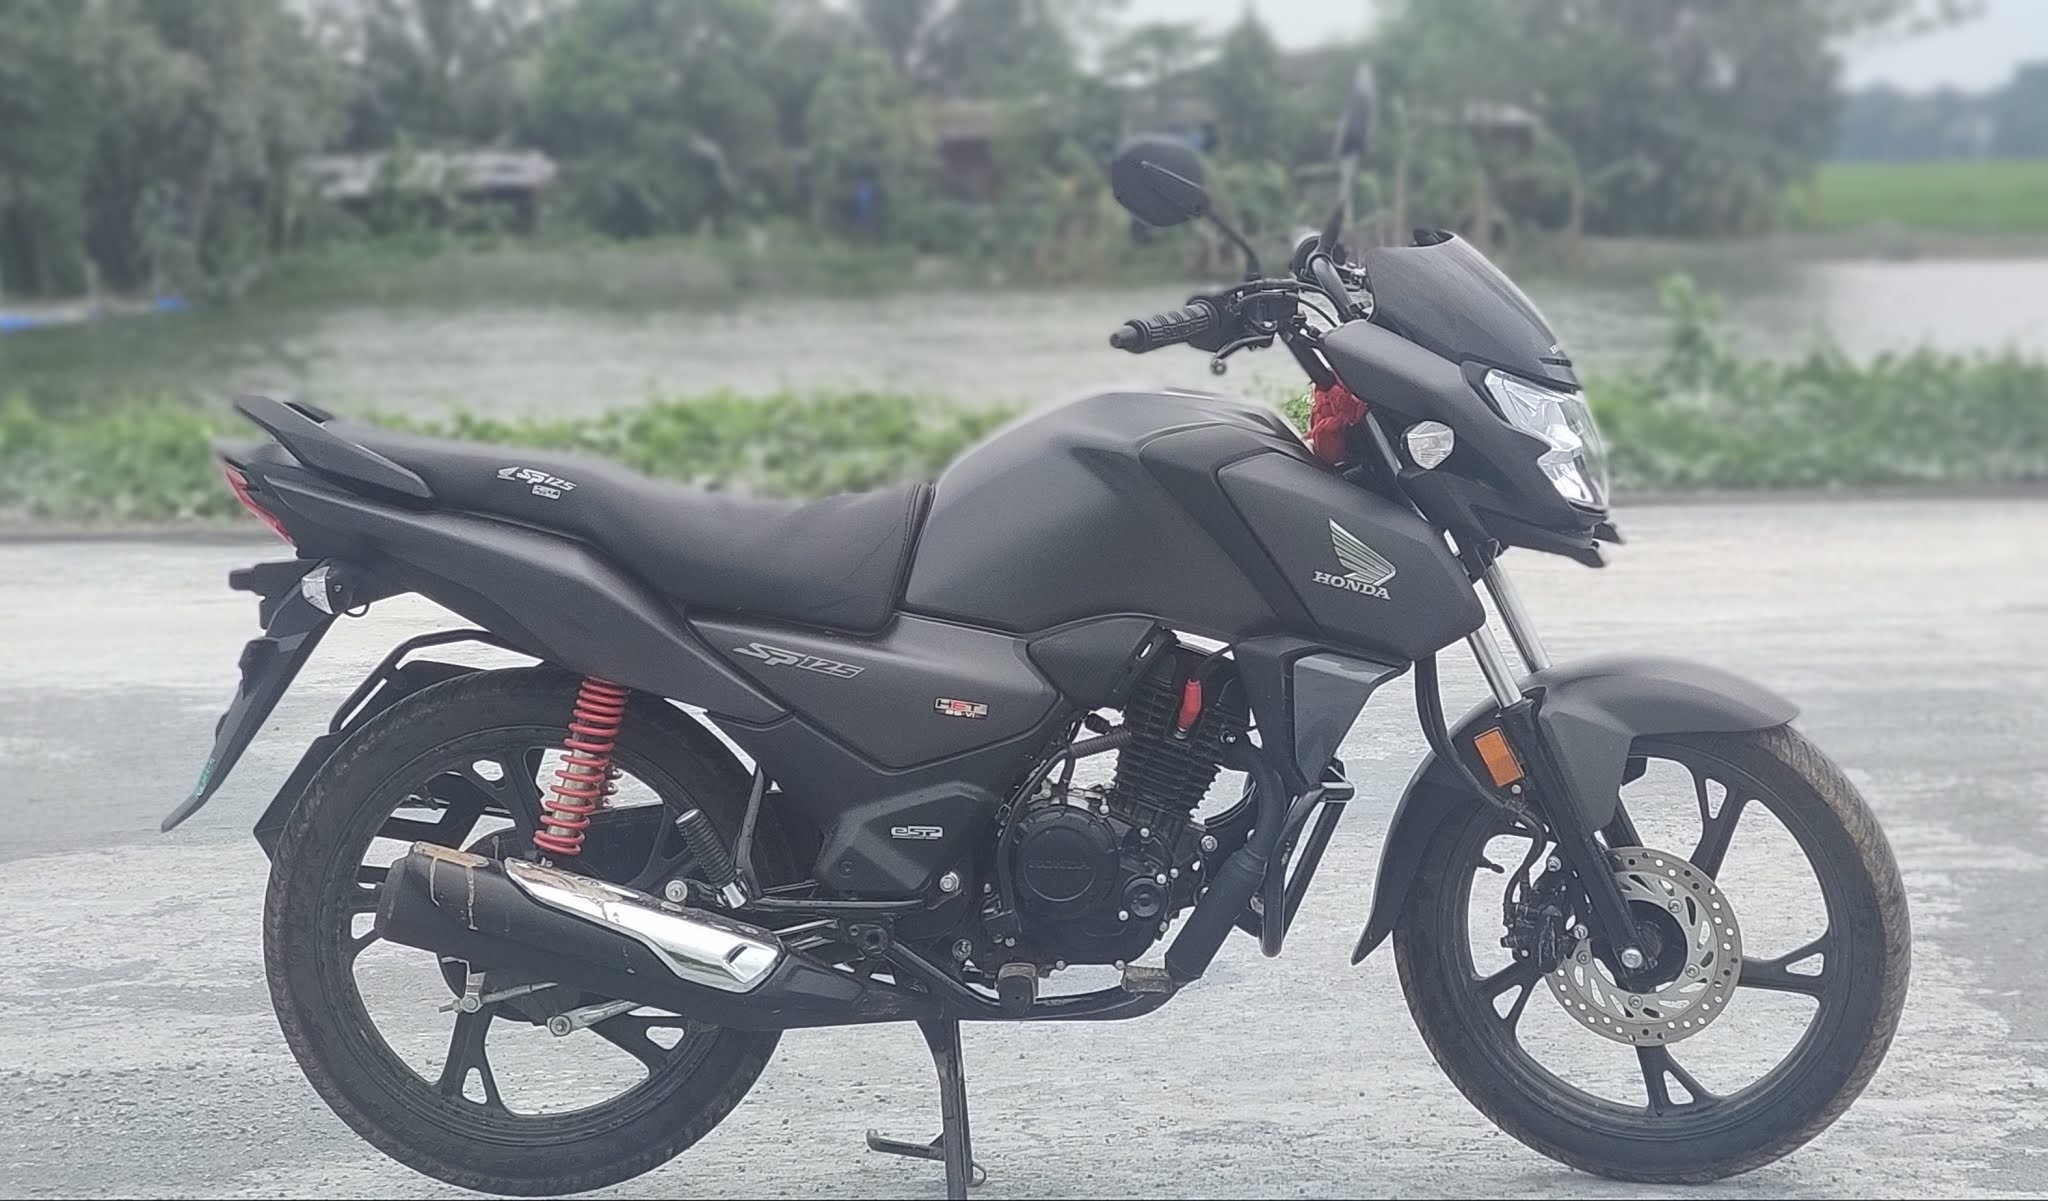 Honda SP 125 Price in India, Mileage, Specifications, Colors, Top Speed and Servicing Periods